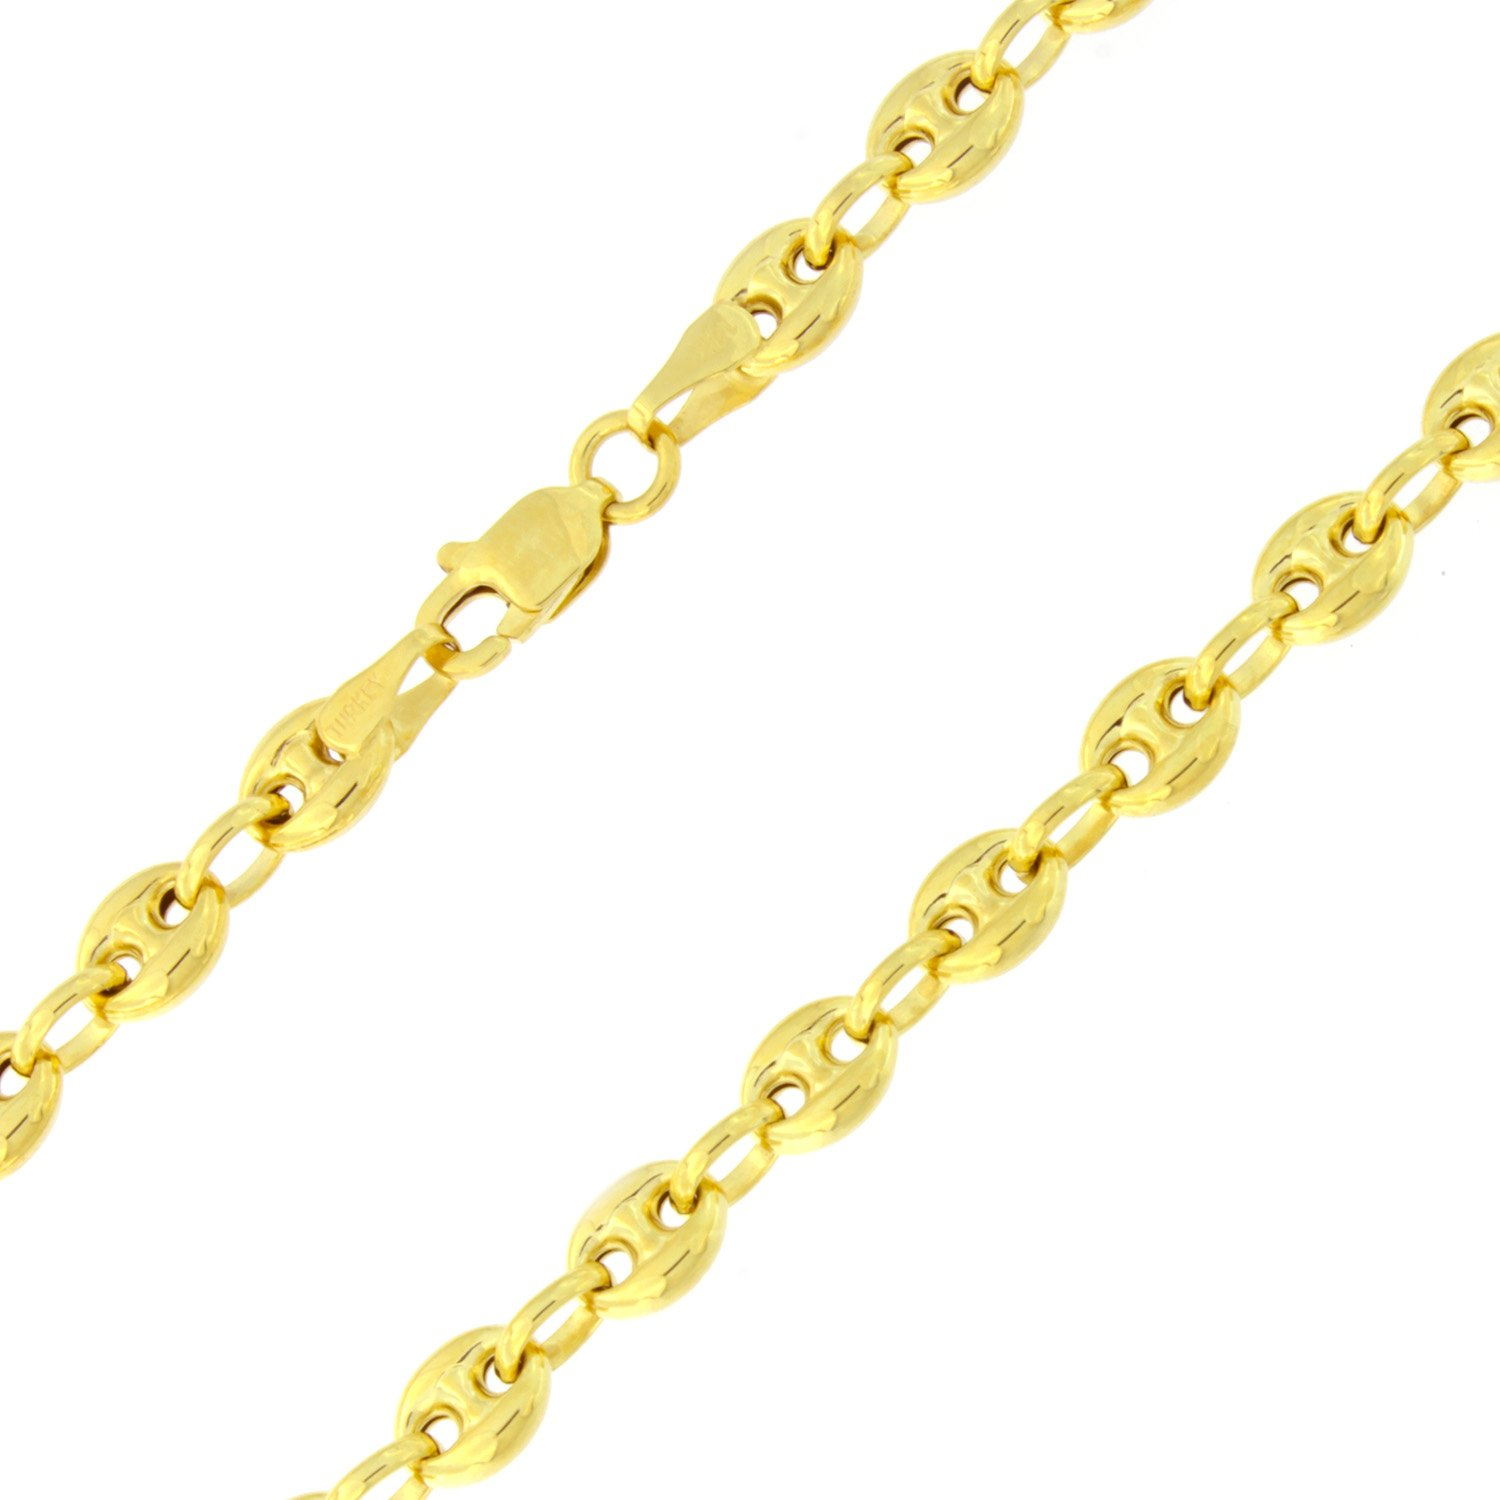 14k Yellow Gold 4.7mm Puffed Mariner Chain Anklet - 10''